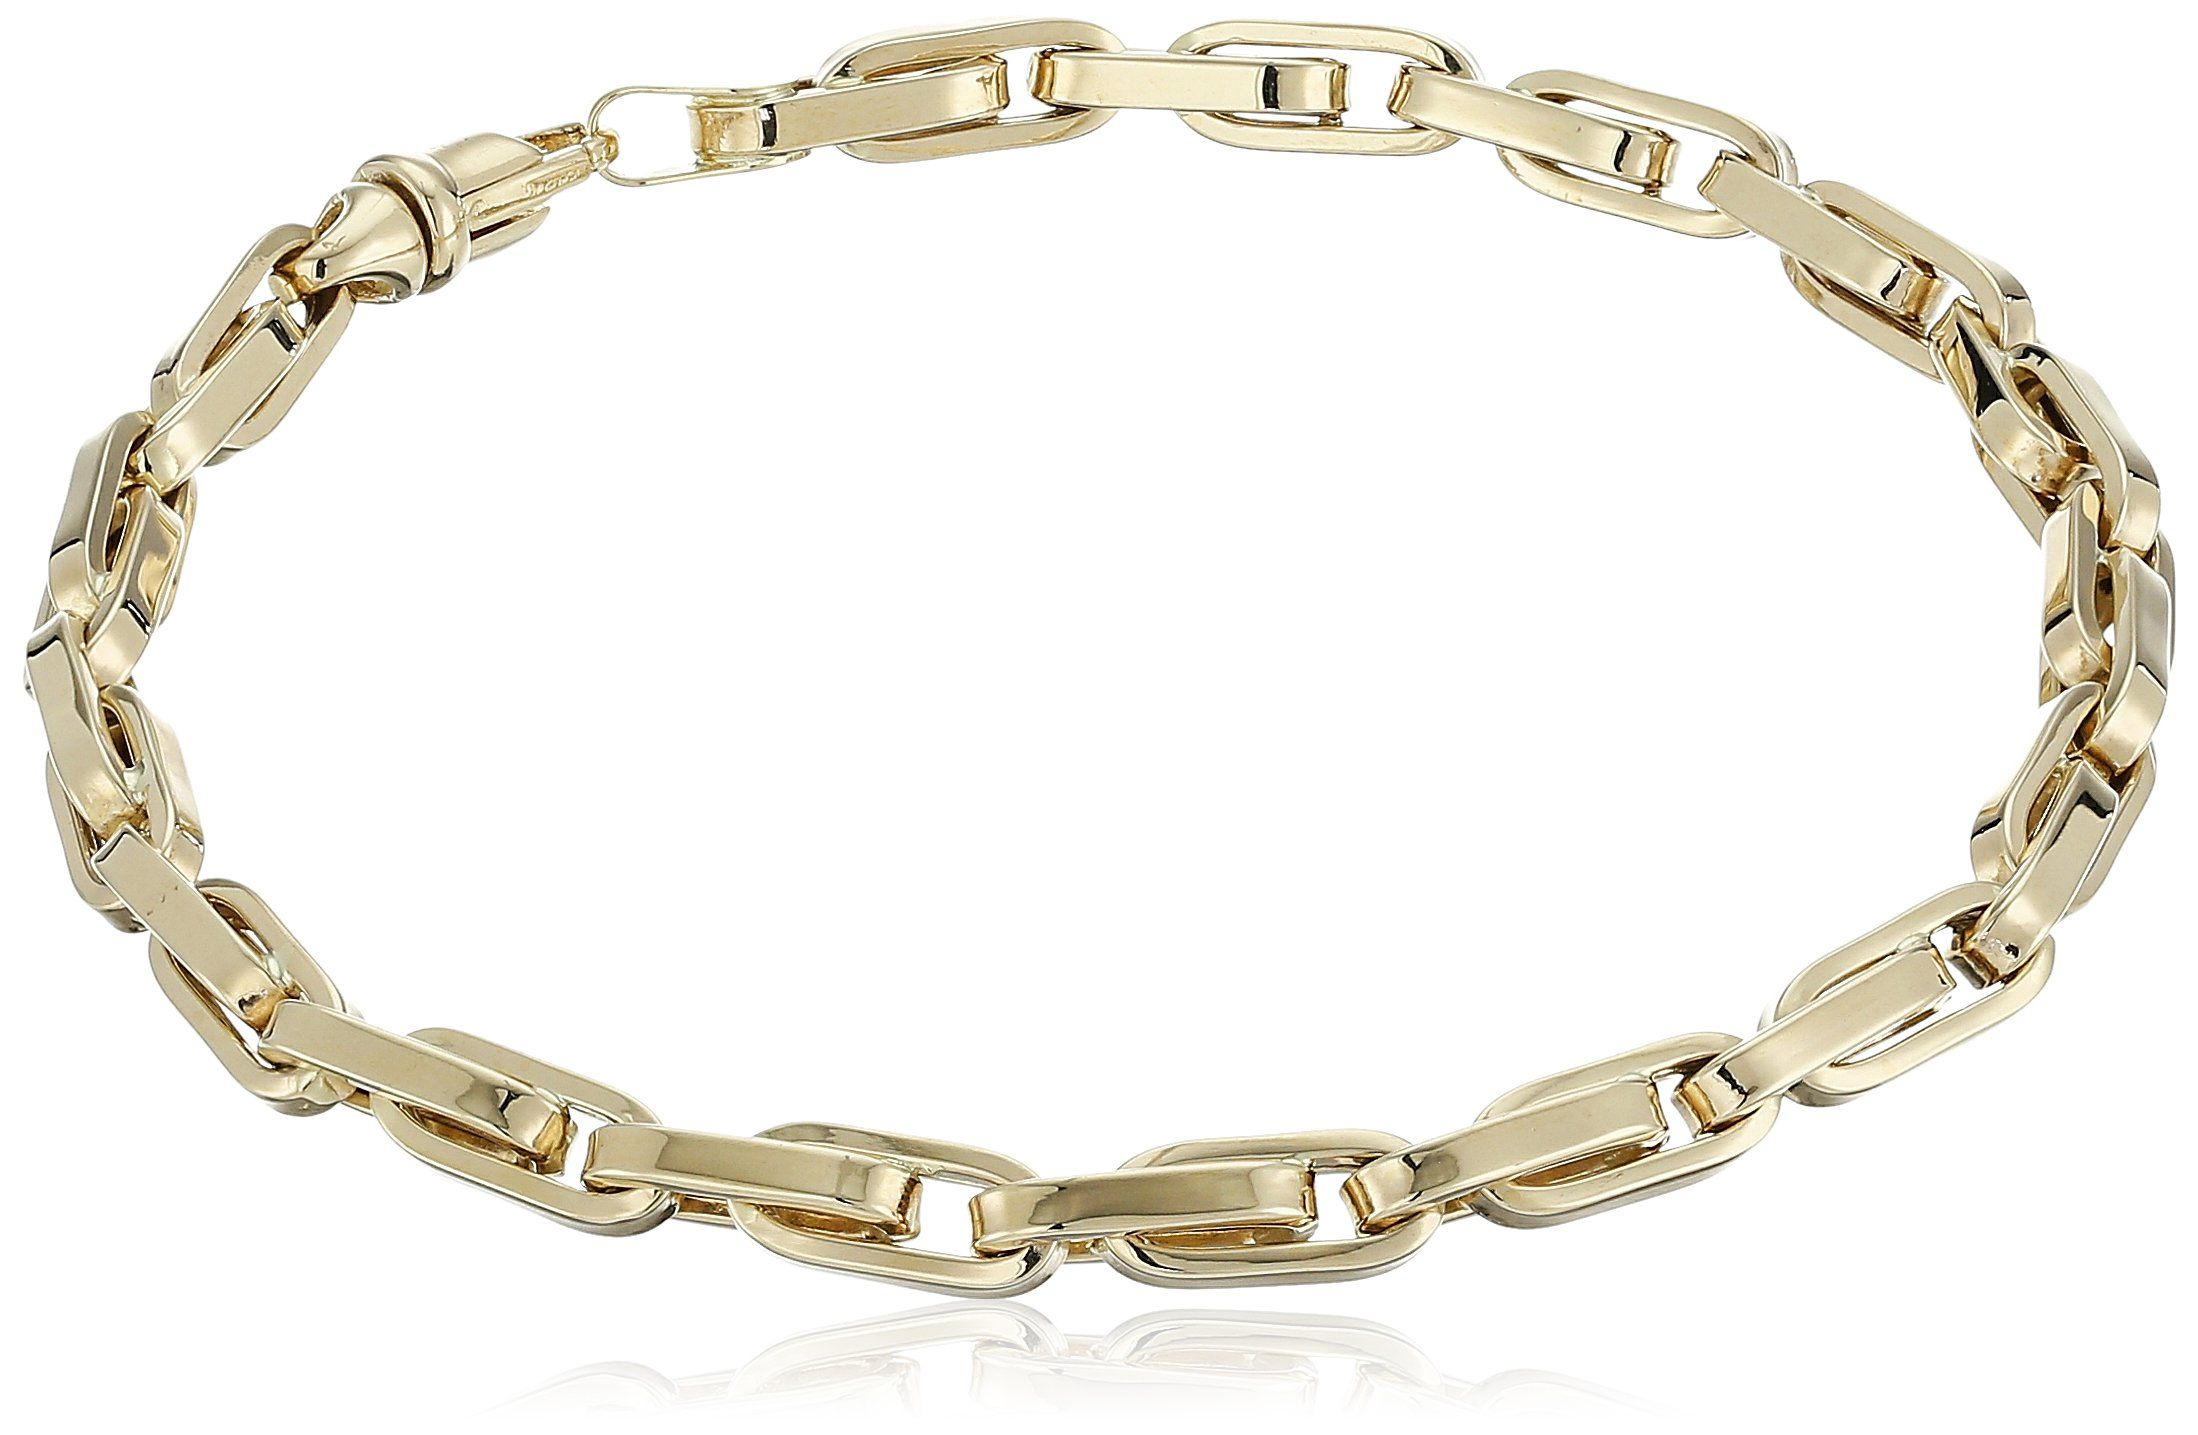 Menus k yellow gold link bracelet